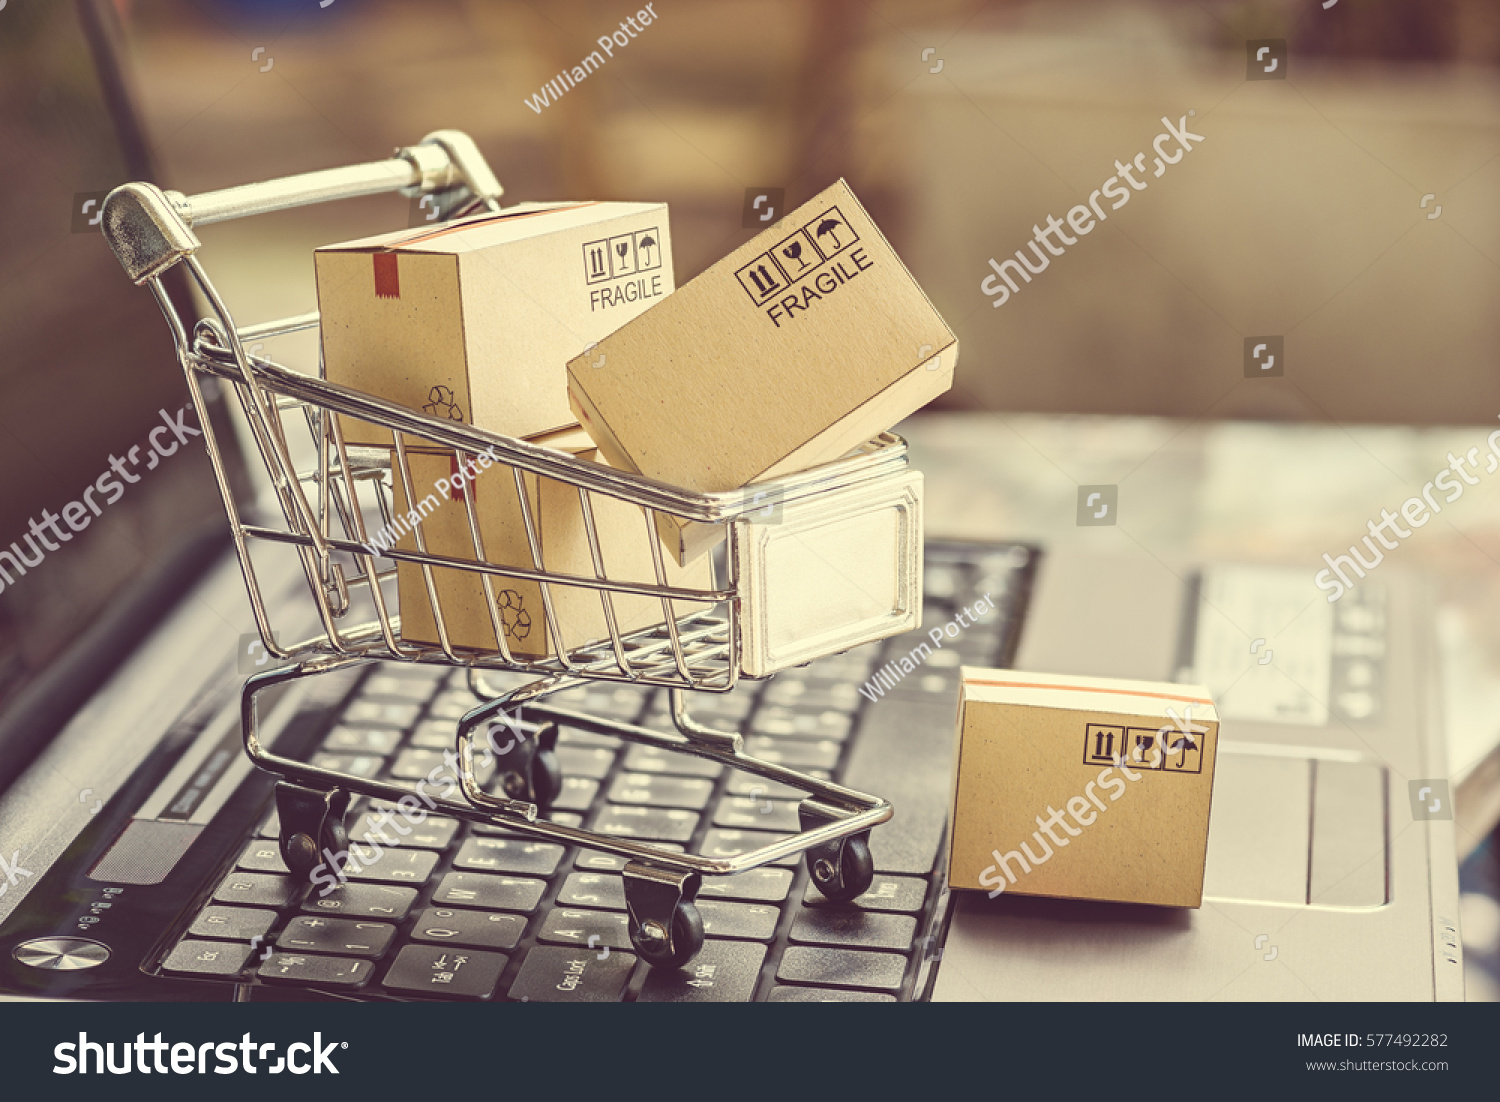 Paper boxes in a shopping cart on a laptop keyboard. Ideas about e-commerce, e-commerce or electronic commerce is a transaction of buying or selling goods or services online over the internet. #577492282